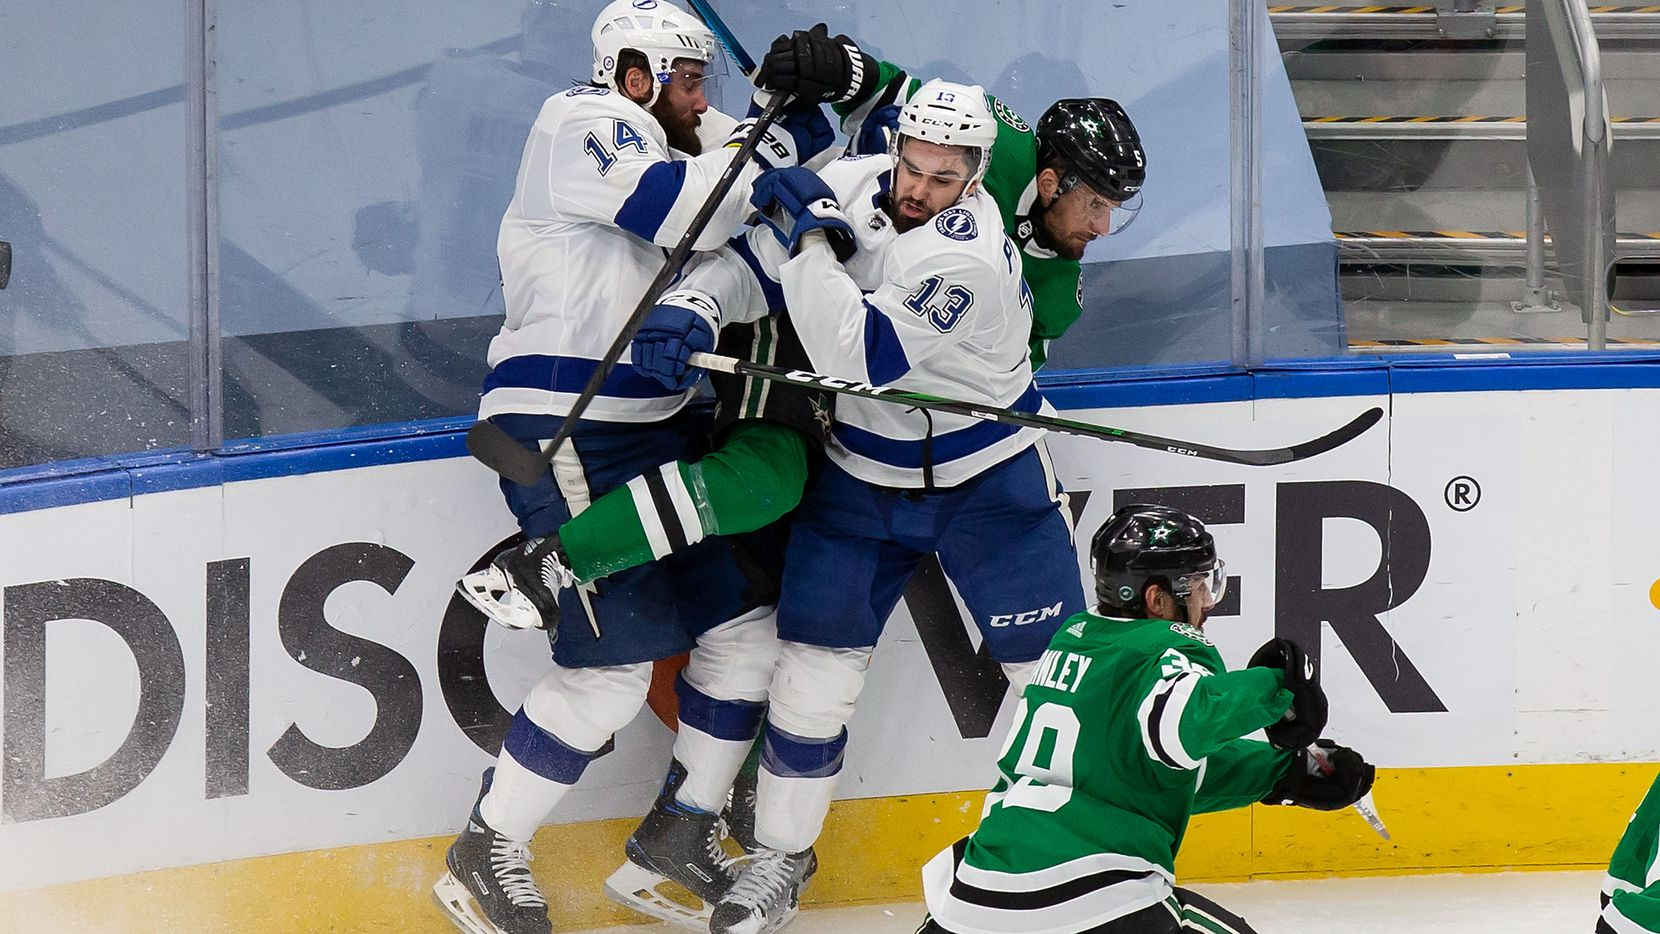 Andrej Sekera (5) of the Dallas Stars is sandwiched by Pat Maroon (14) and Cedric Paquette (13) of the Tampa Bay Lightning during Game Three of the Stanley Cup Final at Rogers Place in Edmonton, Alberta, Canada on Wednesday, September 23, 2020. (Codie McLachlan/Special Contributor)